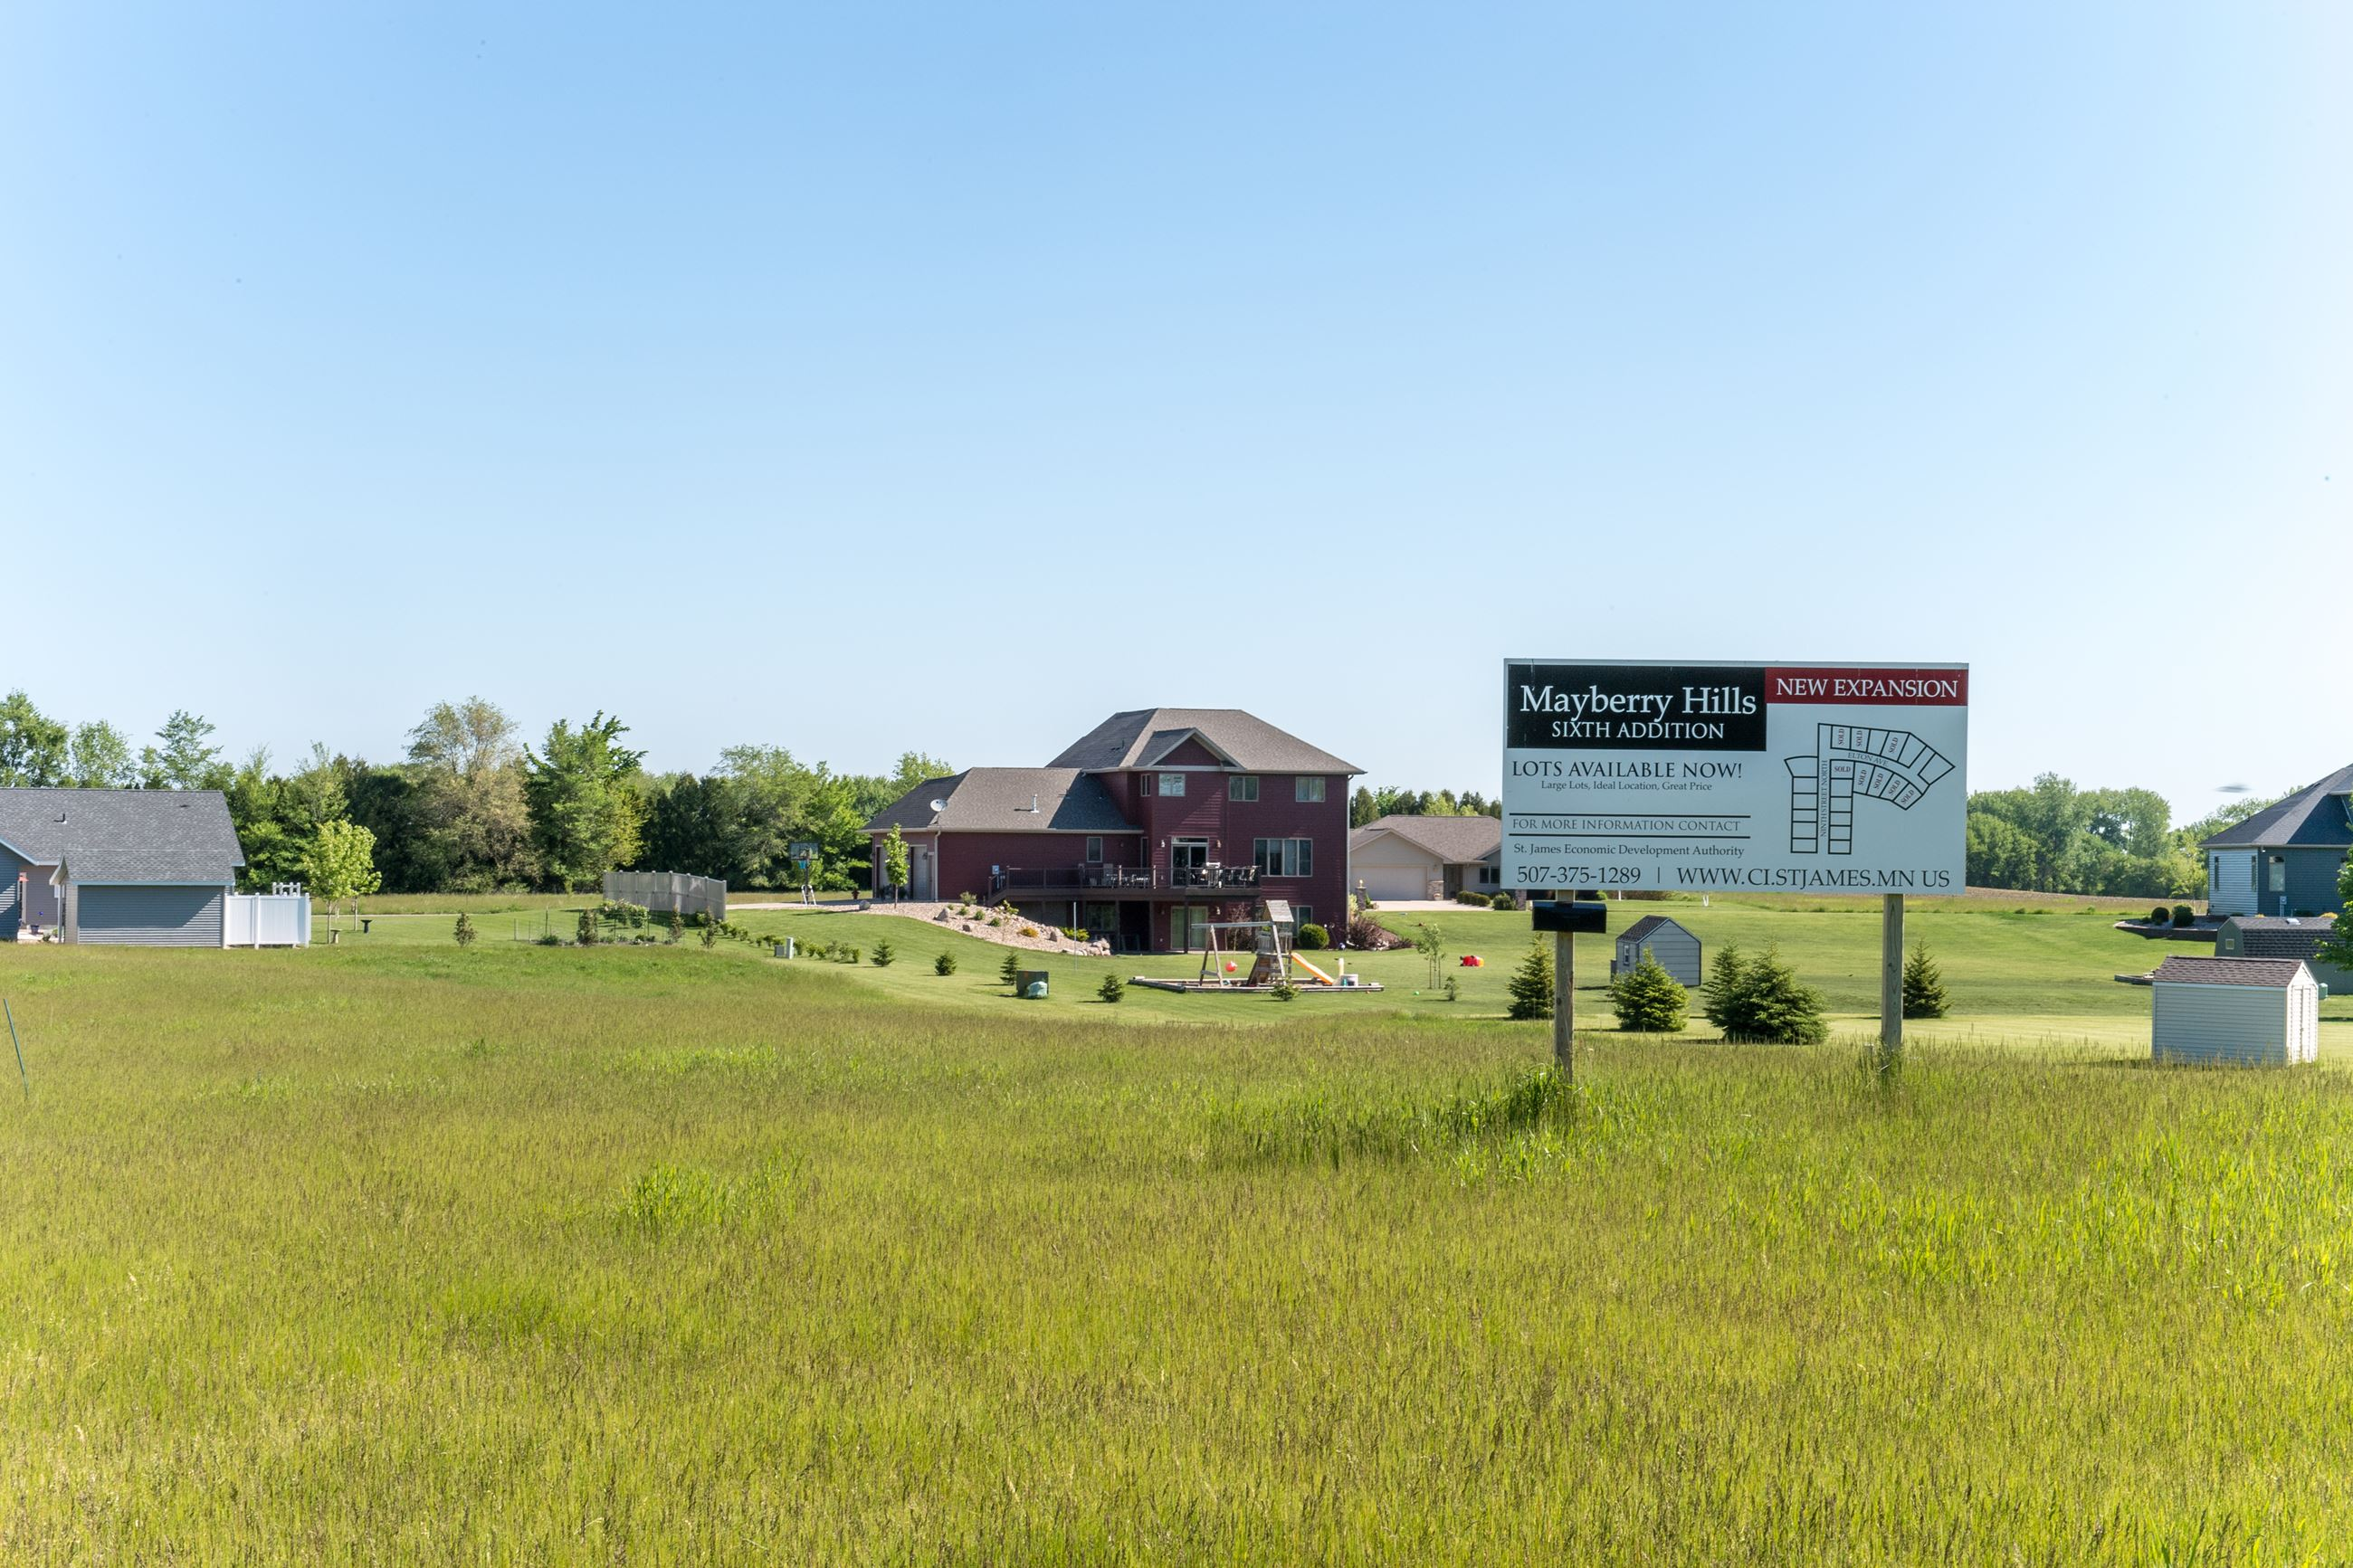 picture of residential lots for sale with billboard